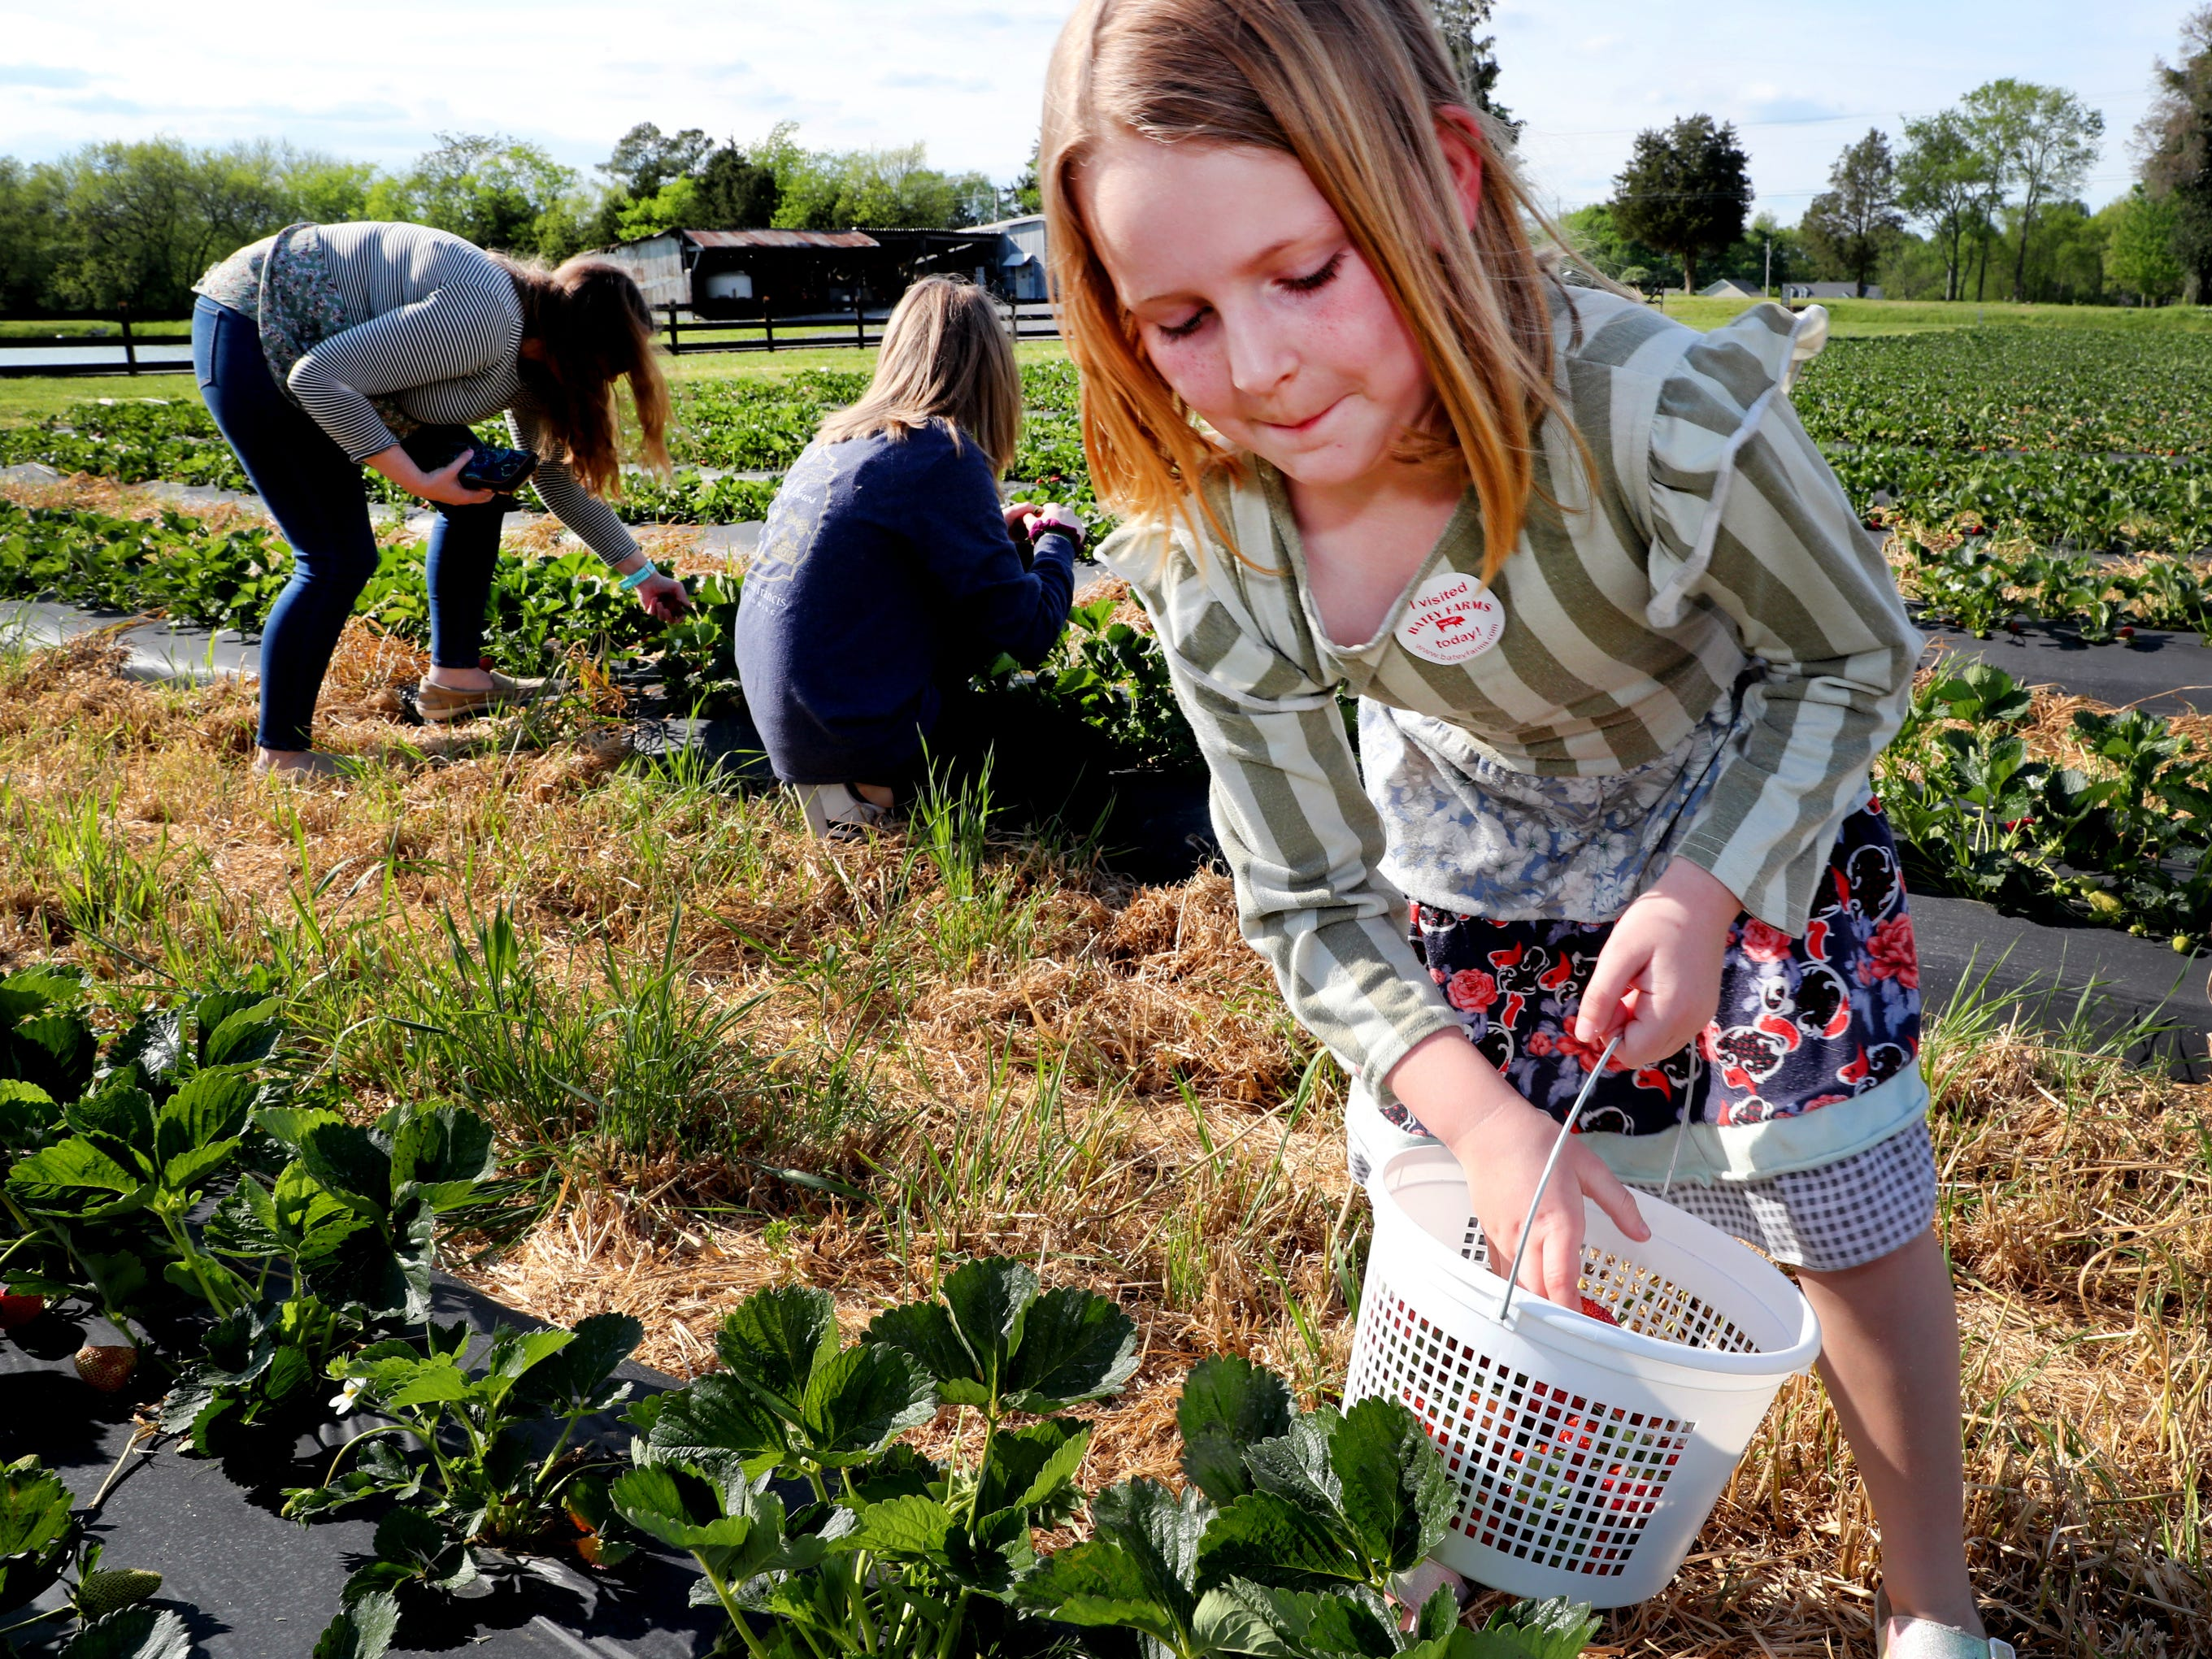 McKenna Davidson, 7, right picks strawberries on Wednesday April 24, 2019, at Batey Farms in Murfreesboro, as her mom Lynda Davidson, left and sister Morgan Davidson, 15, center pick from a different row.